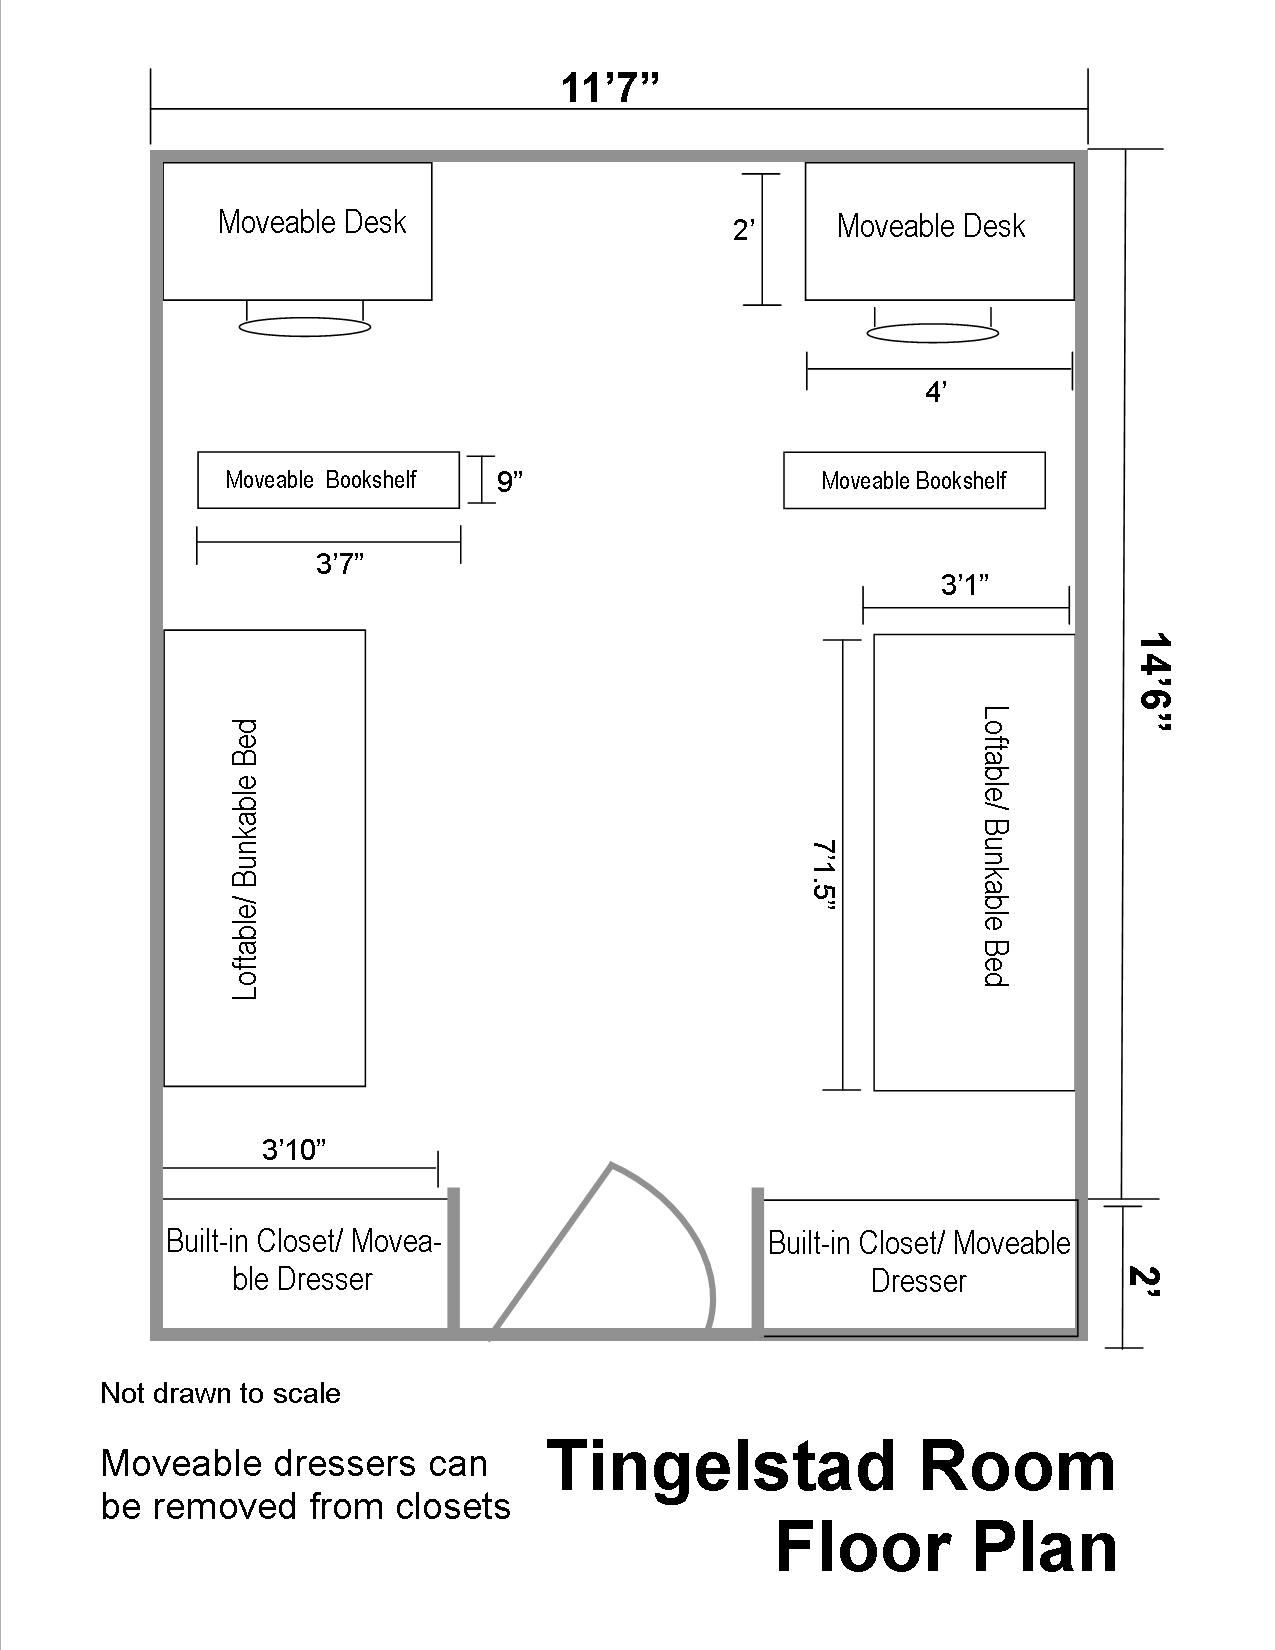 Tingelstad Hall Floor Plans Residential Life Plu